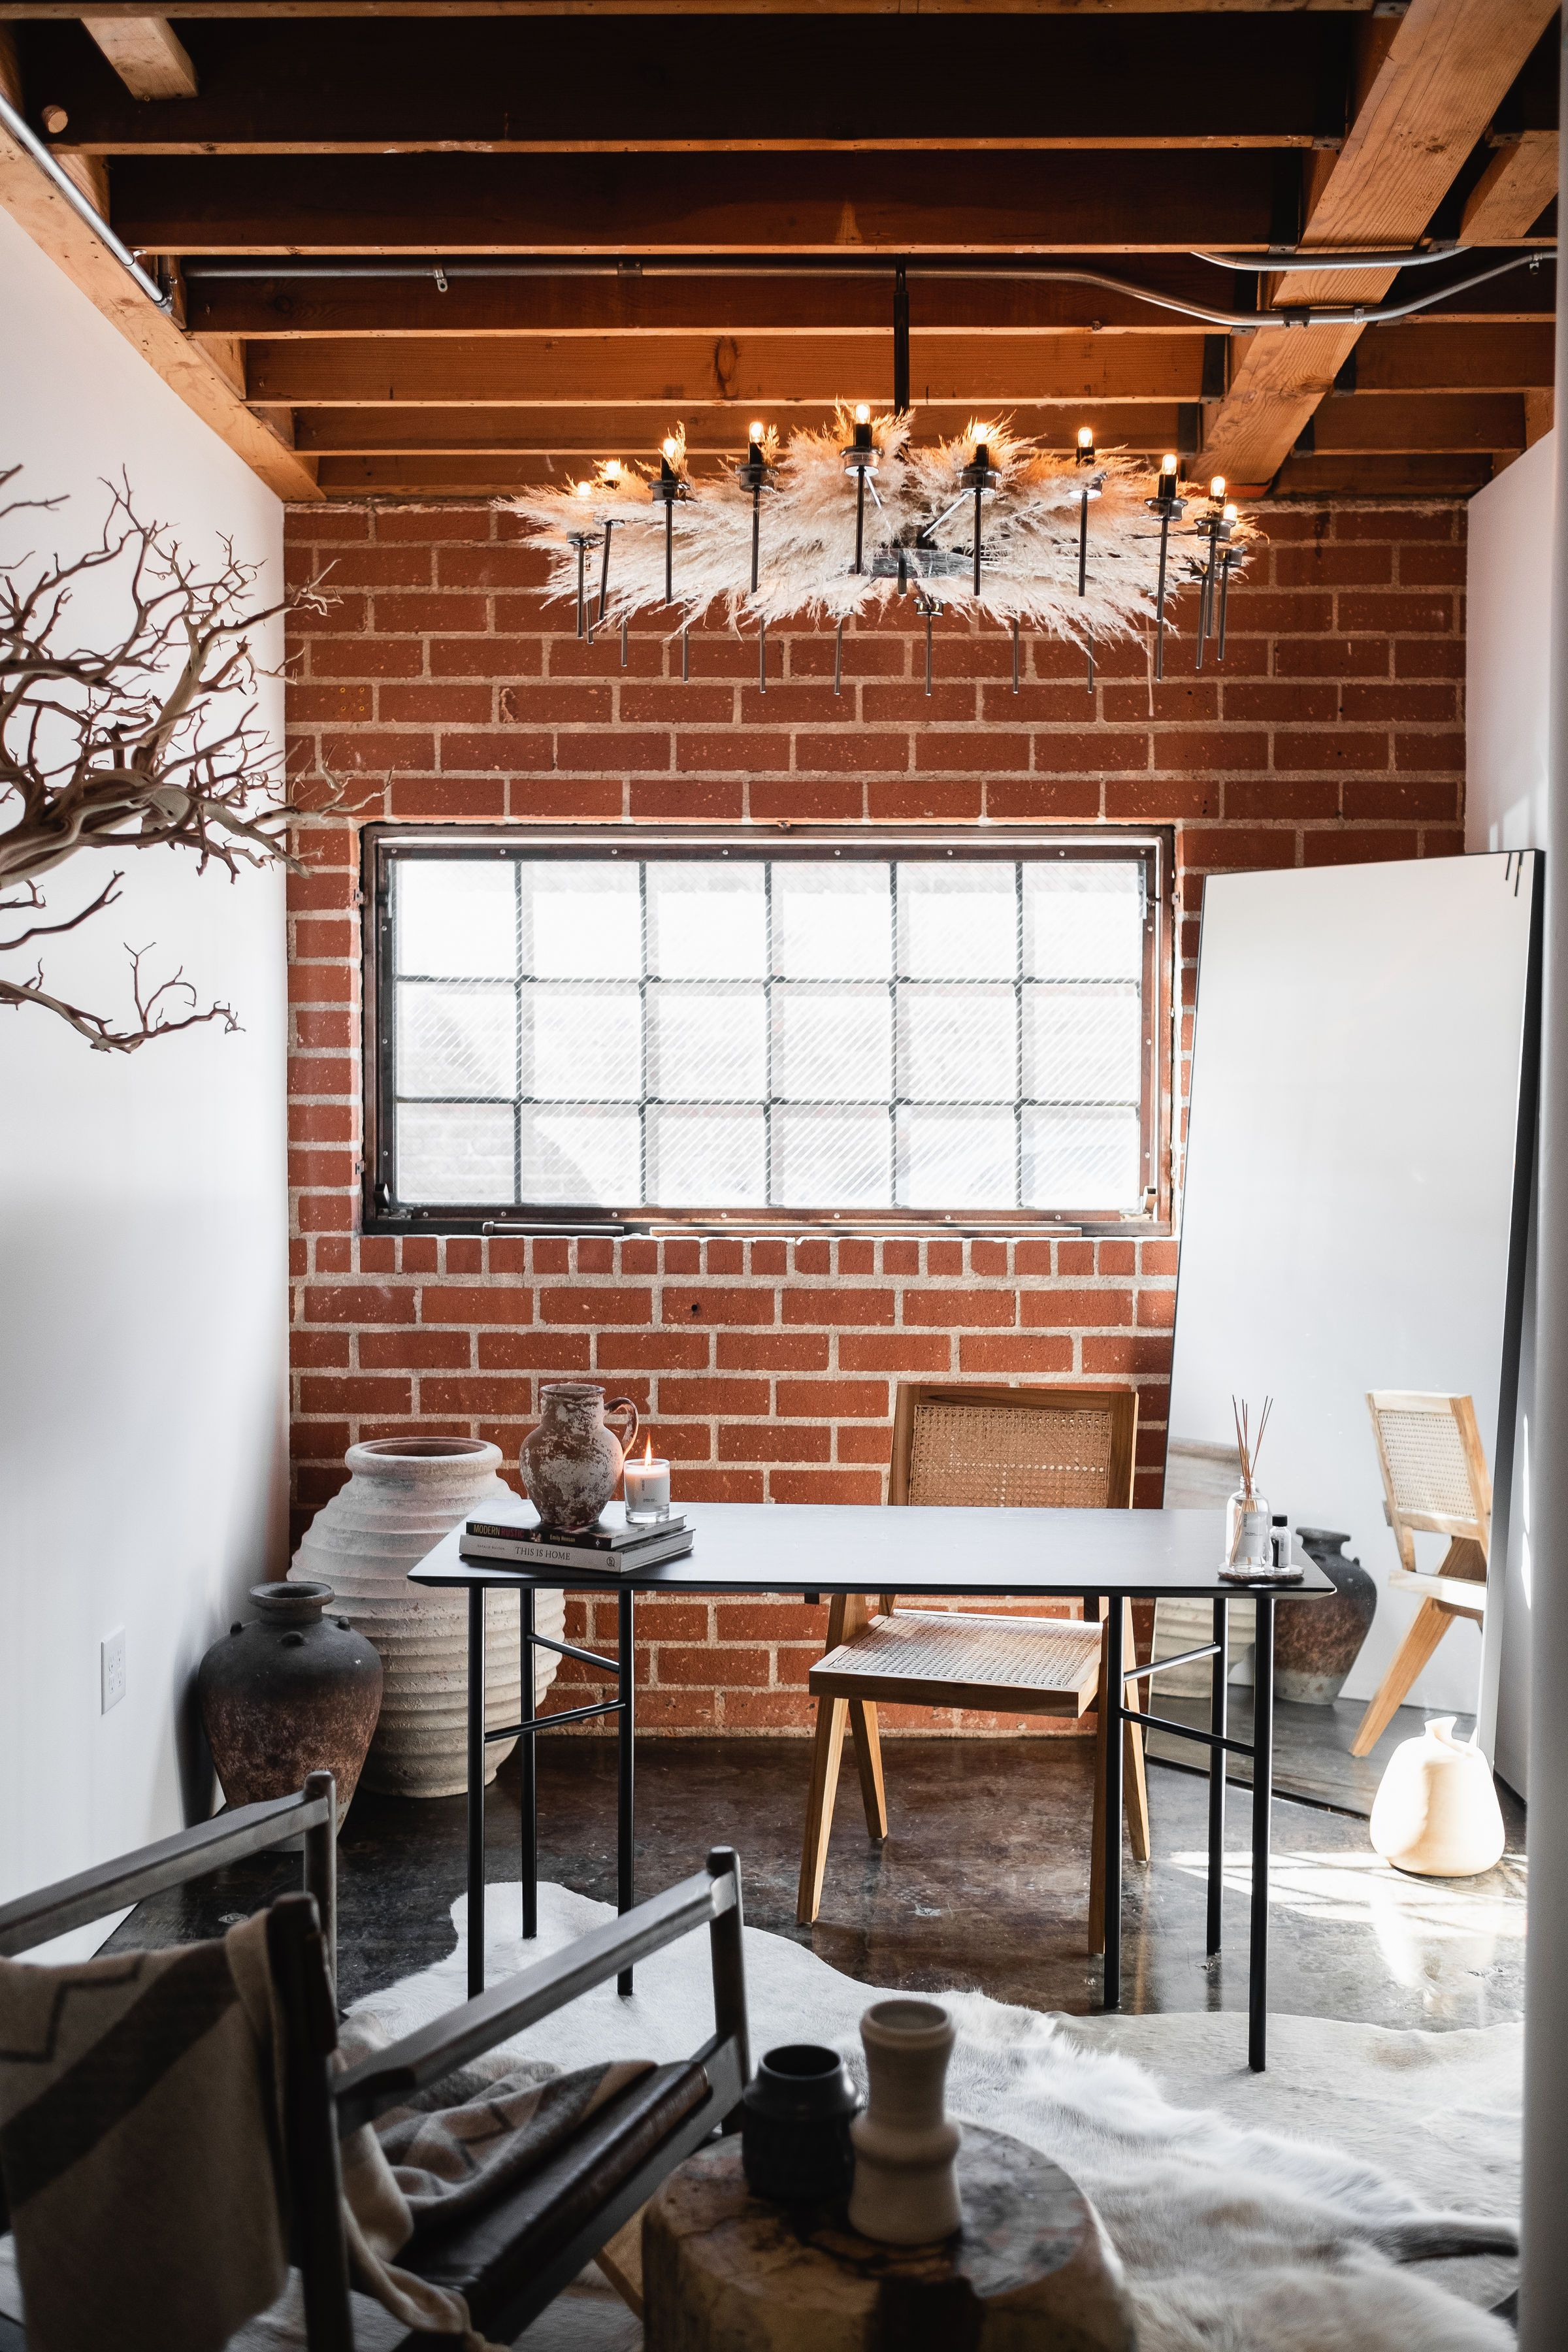 Industrial Modern With A Touch Of Rustic Natural Elements